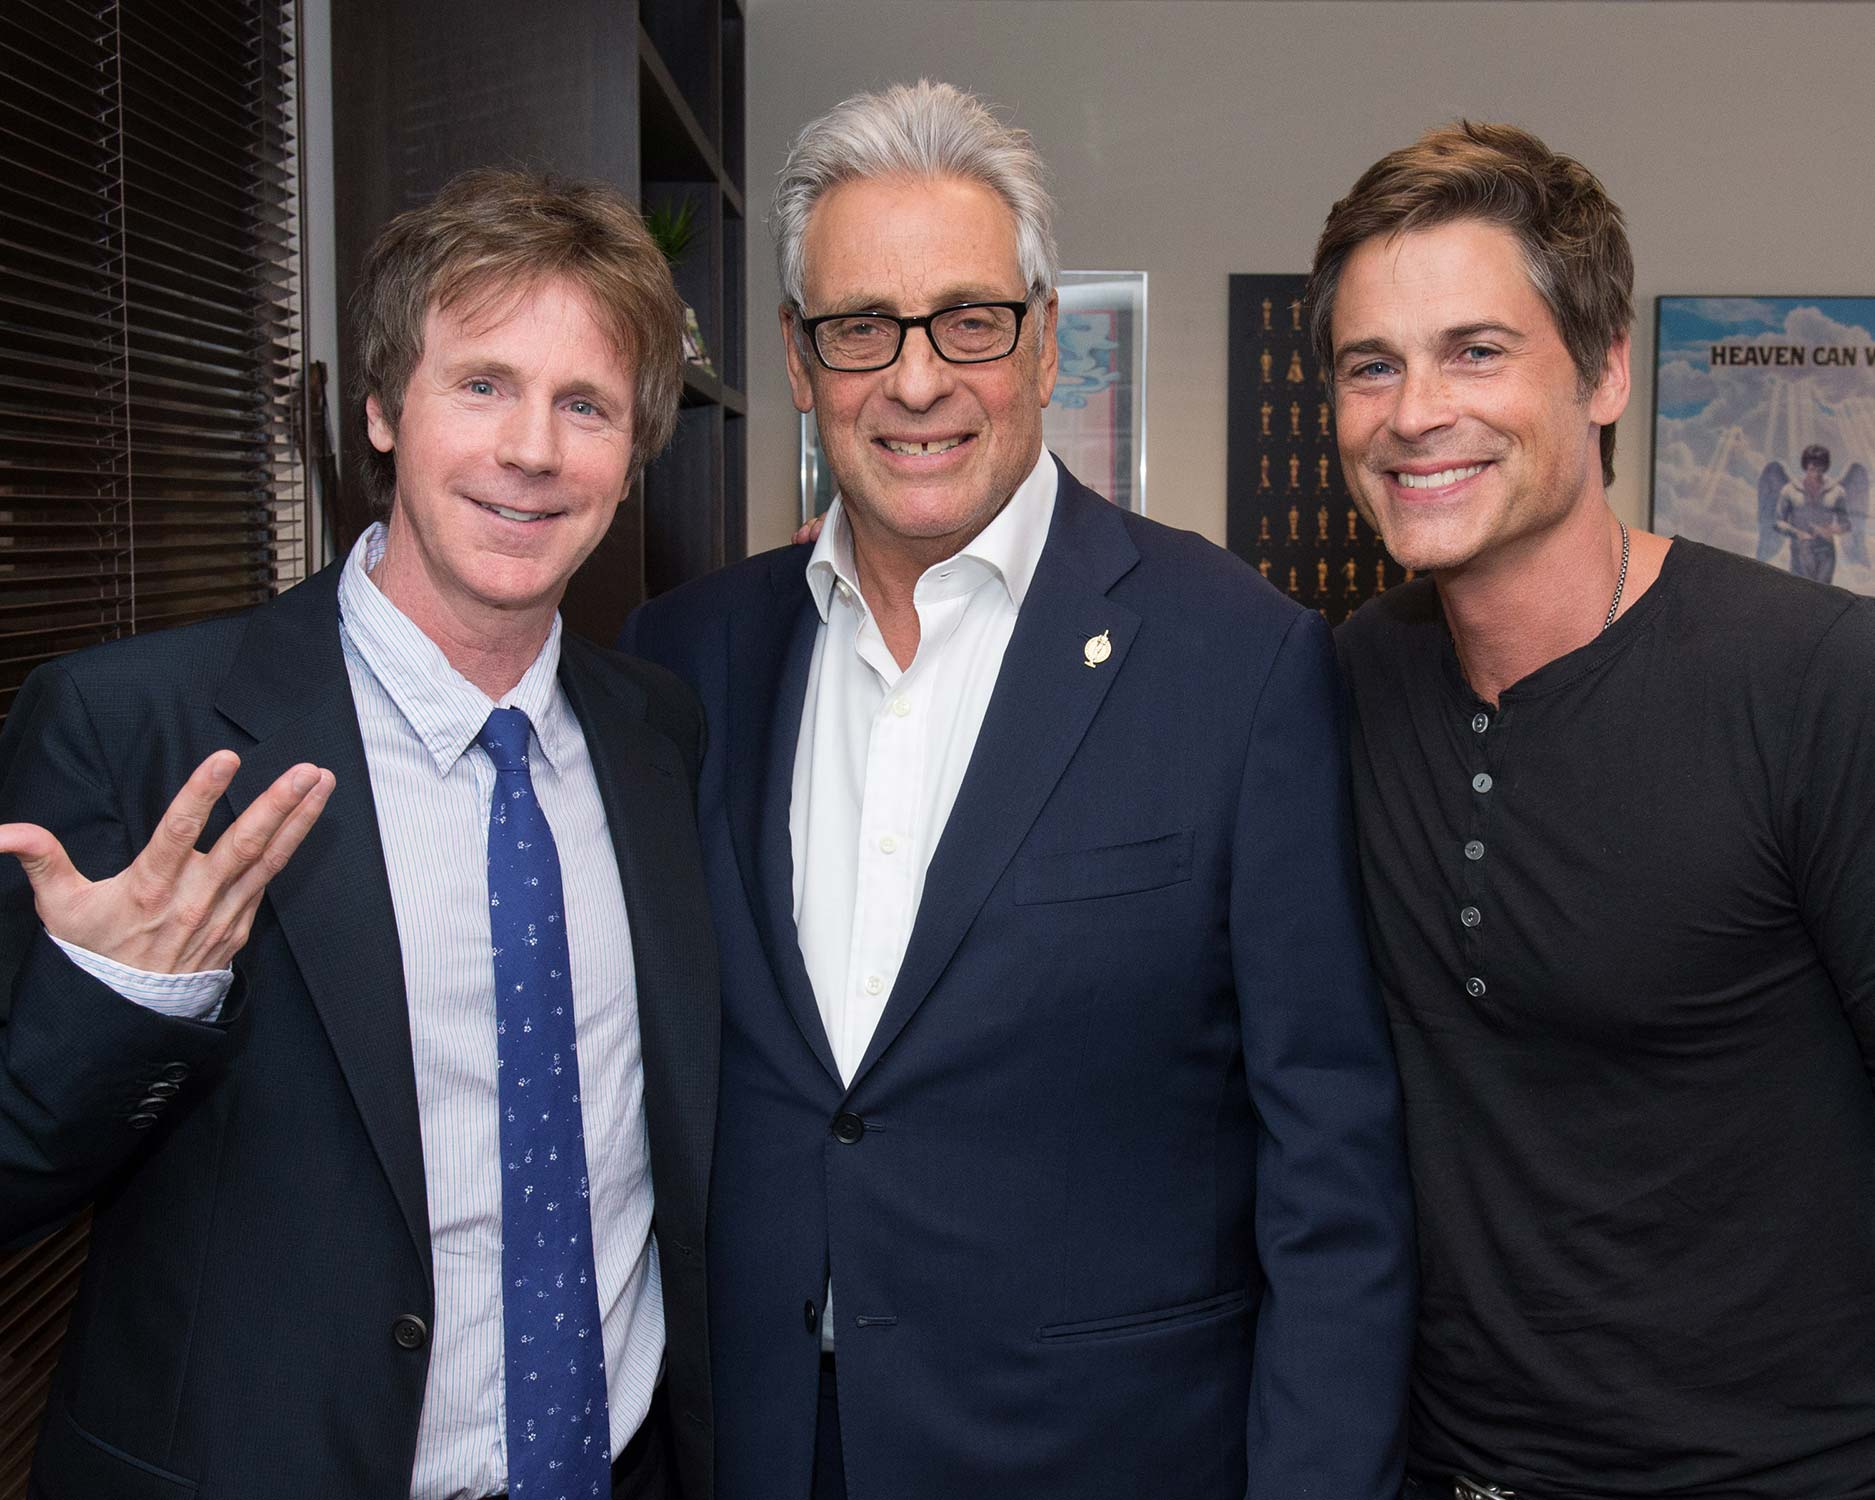 Dana Carvey and Rob Lowe